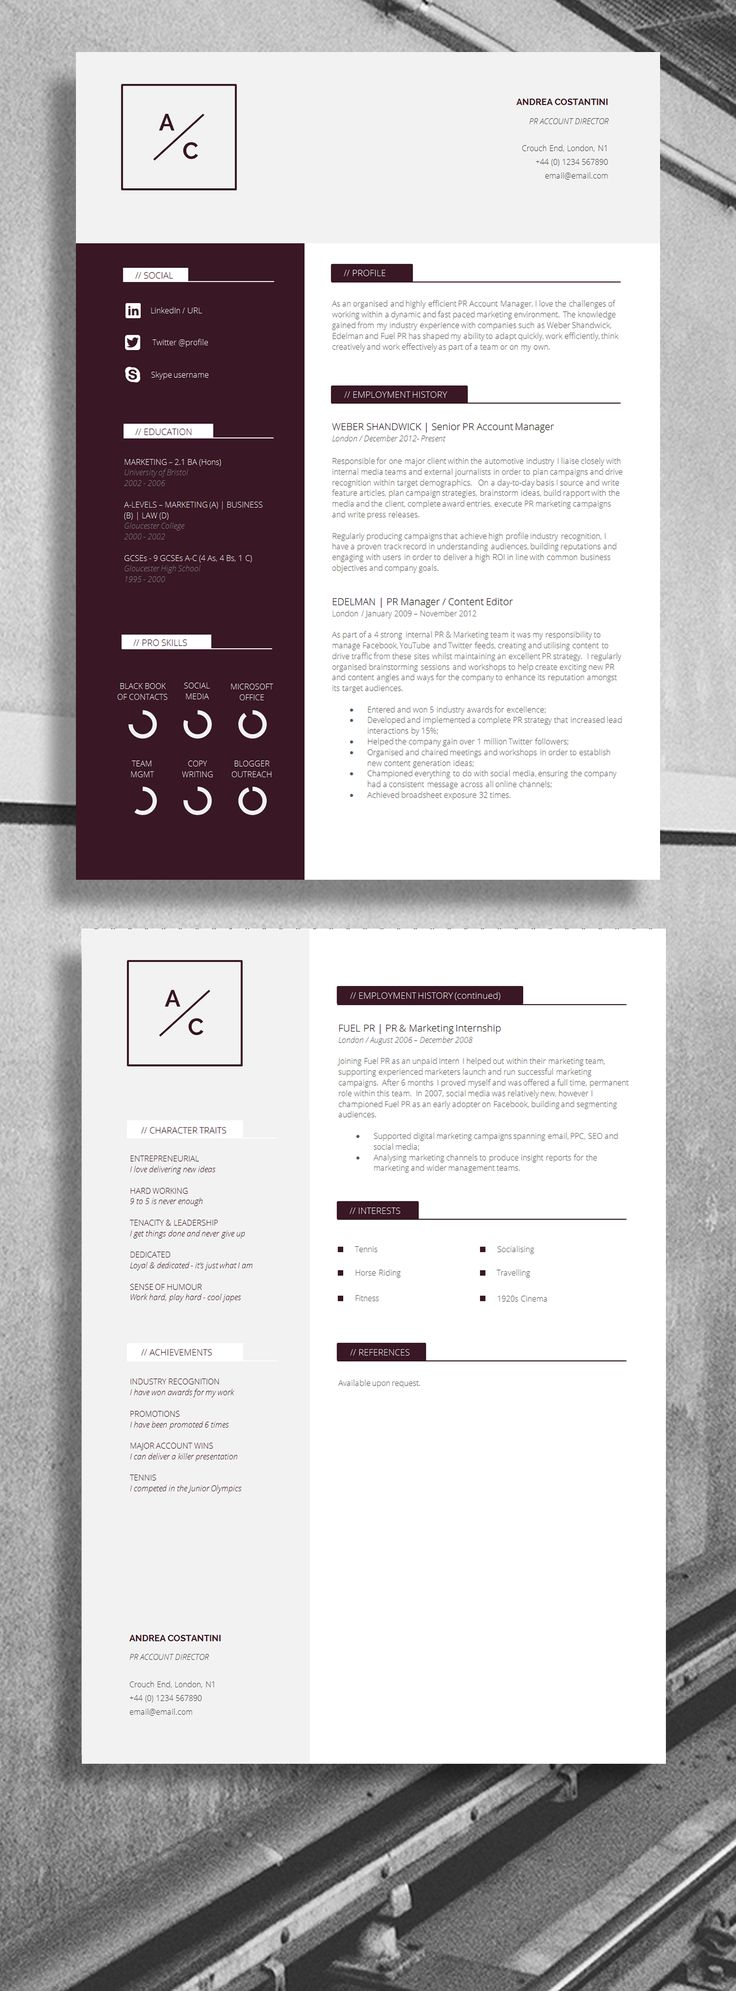 Professional CV / Resume - Strong Layout, suitable for... Accountant, Account Director, IT Director. Job resume inspiration